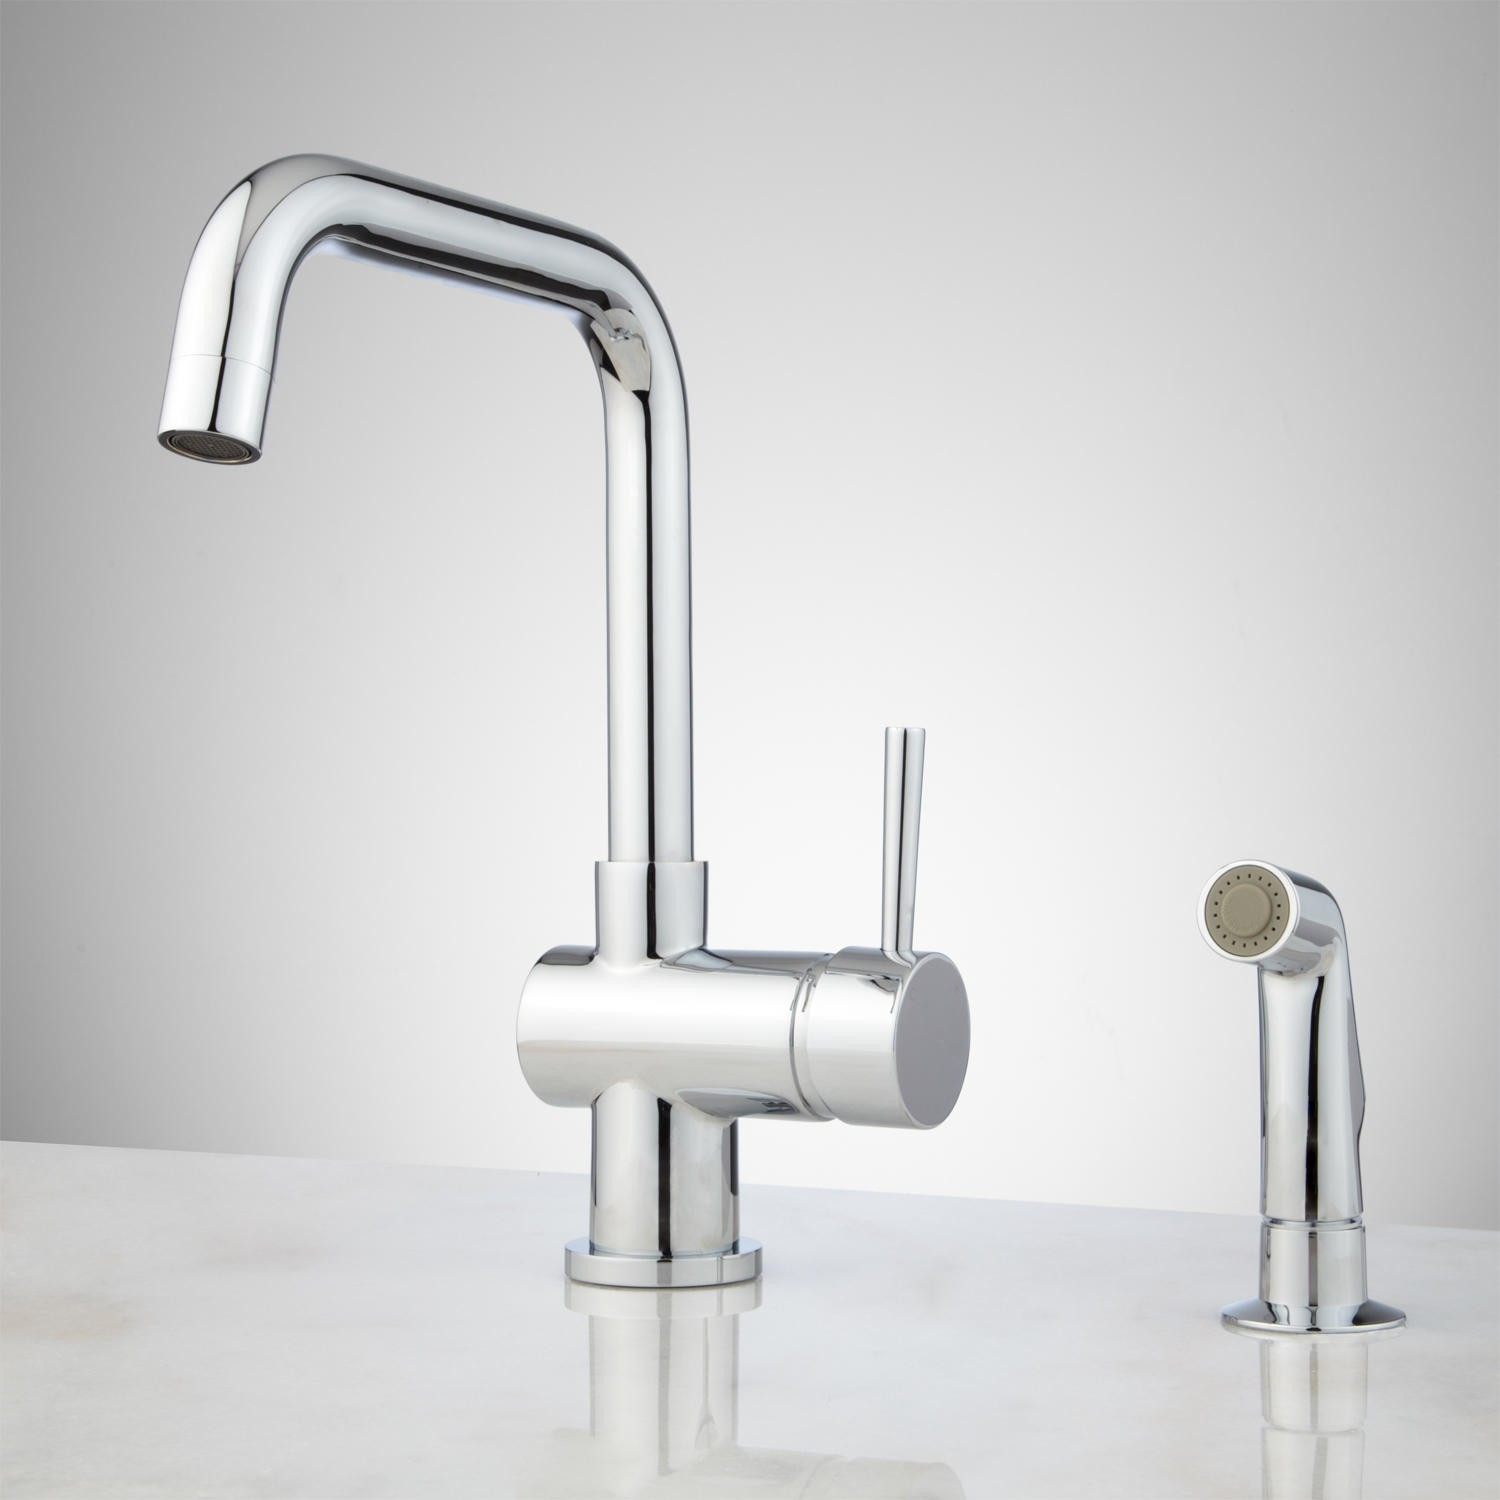 Ideas, single hole kitchen faucet with sidespray single hole kitchen faucet with sidespray lolita single hole kitchen faucet with side spray kitchen 1500 x 1500  .